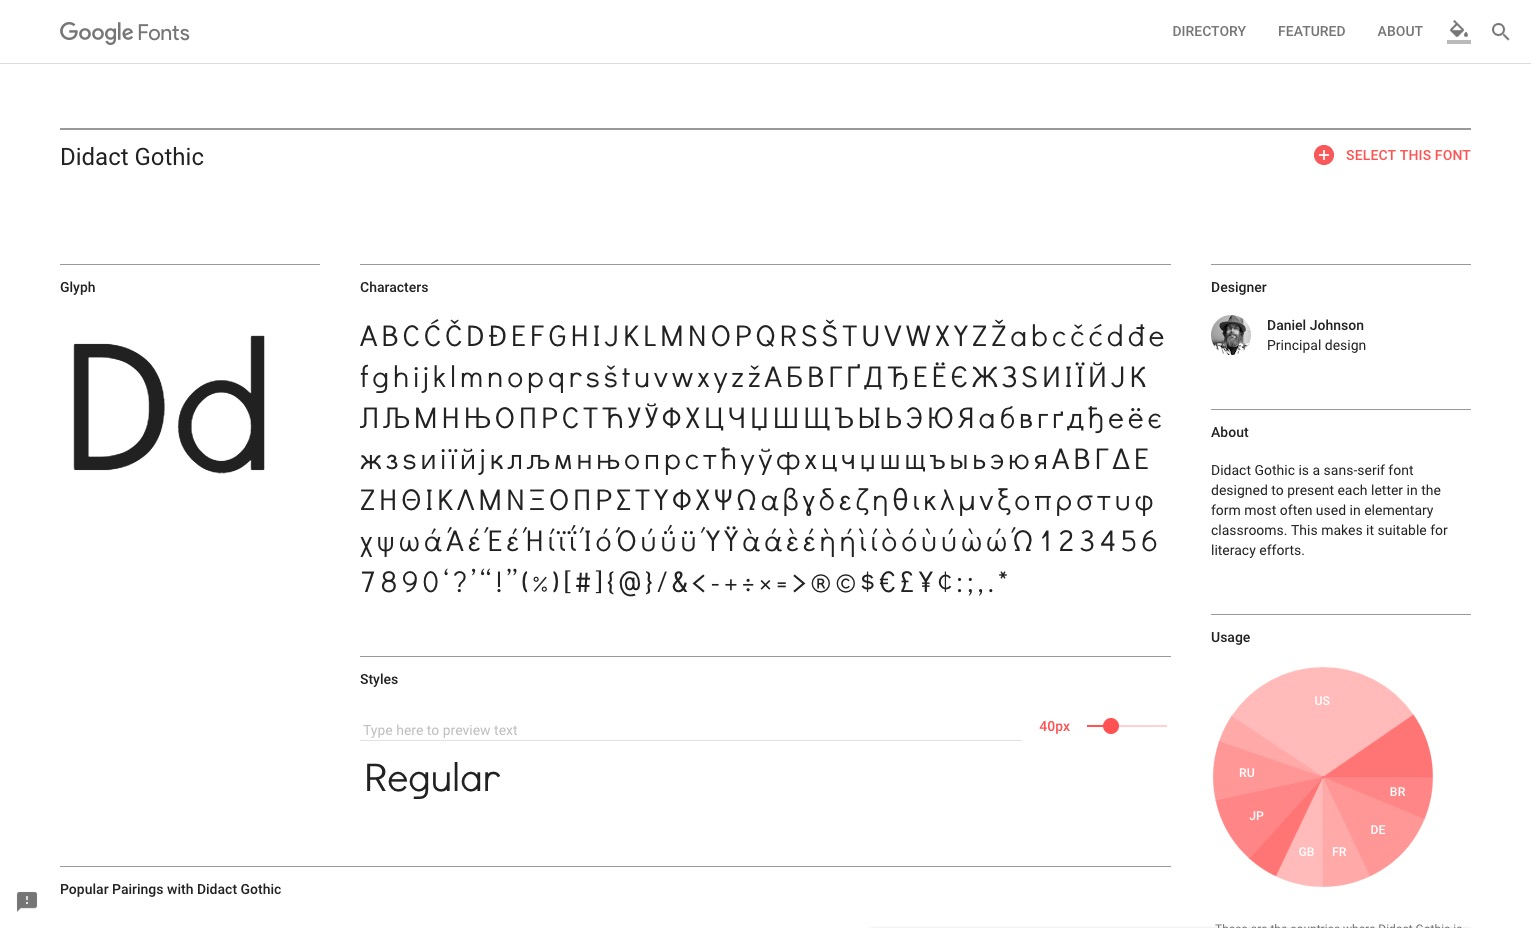 Didact Gothic Google Fonts